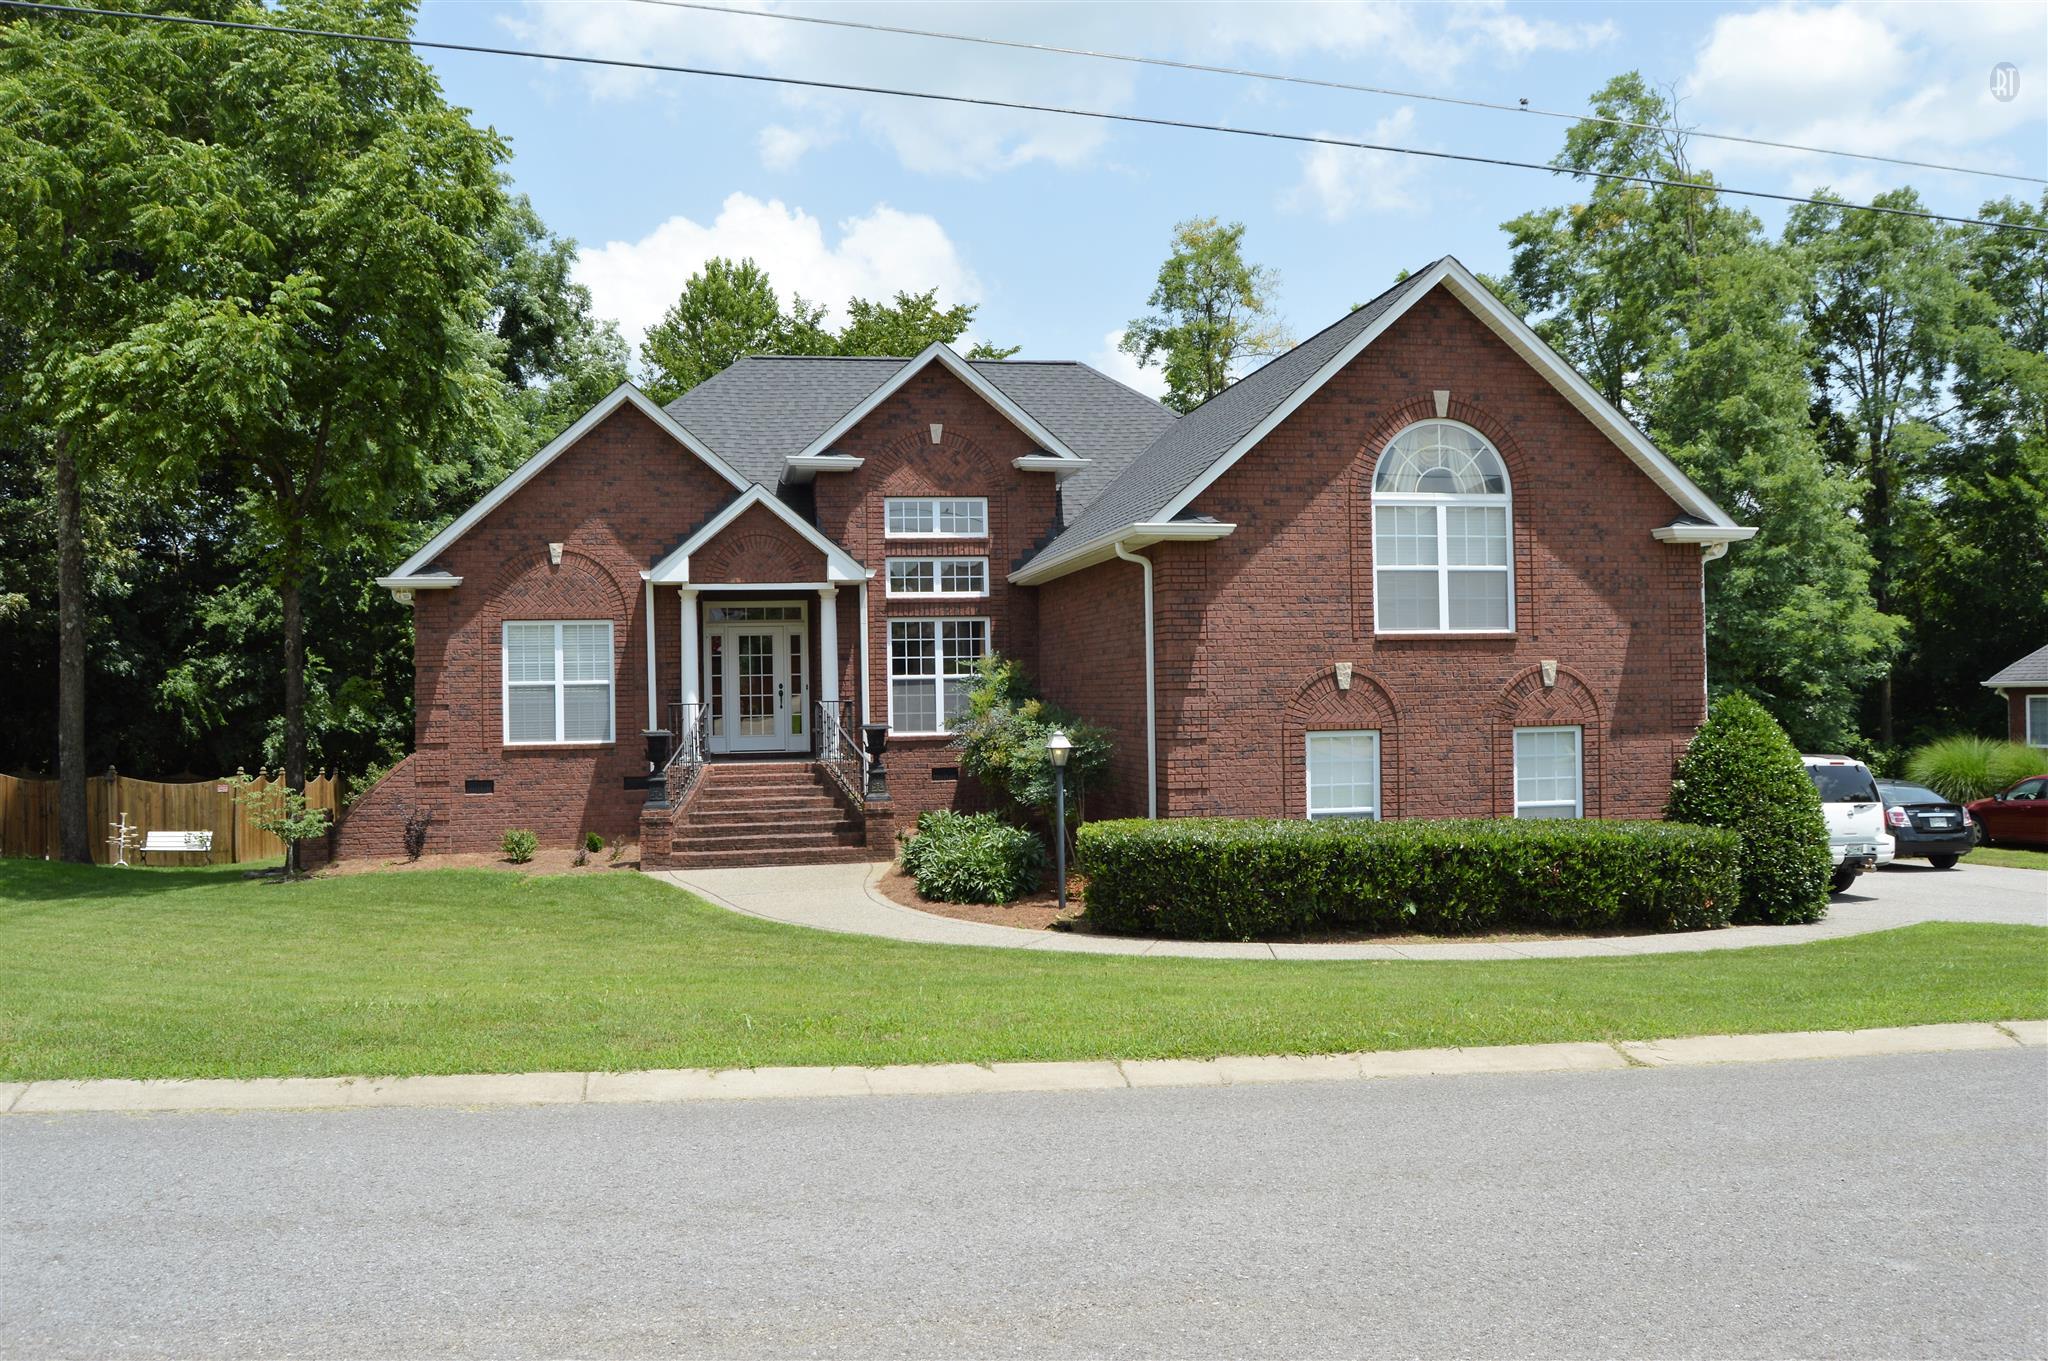 408 Fieldstone Dr, White House, TN 37188